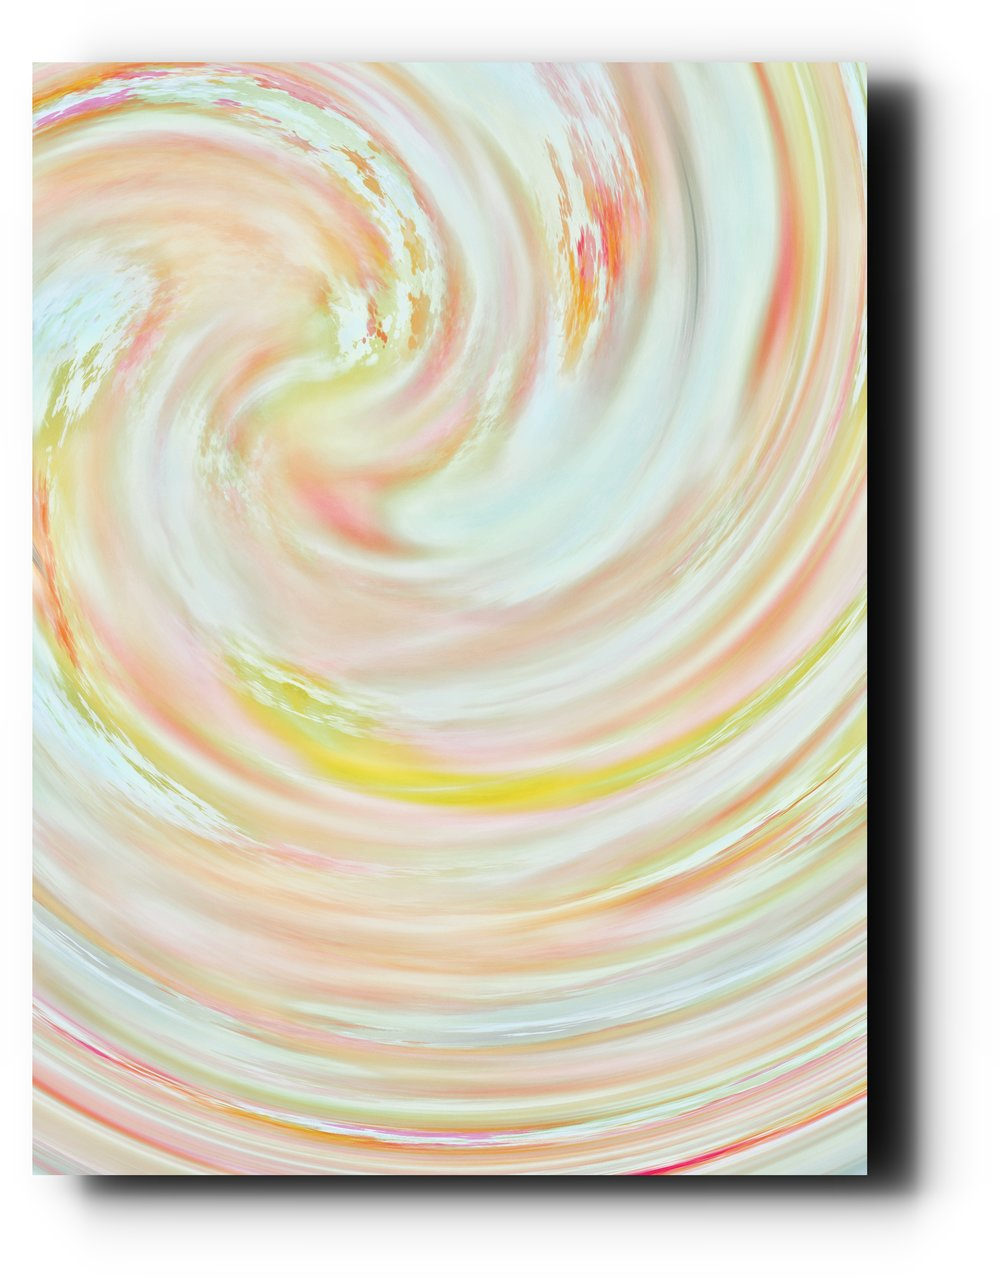 Visit my gallery of  abstract artwork  prints to see all contemporary, modern artwork paintings and prints finishes.To read more about my creative process  here.